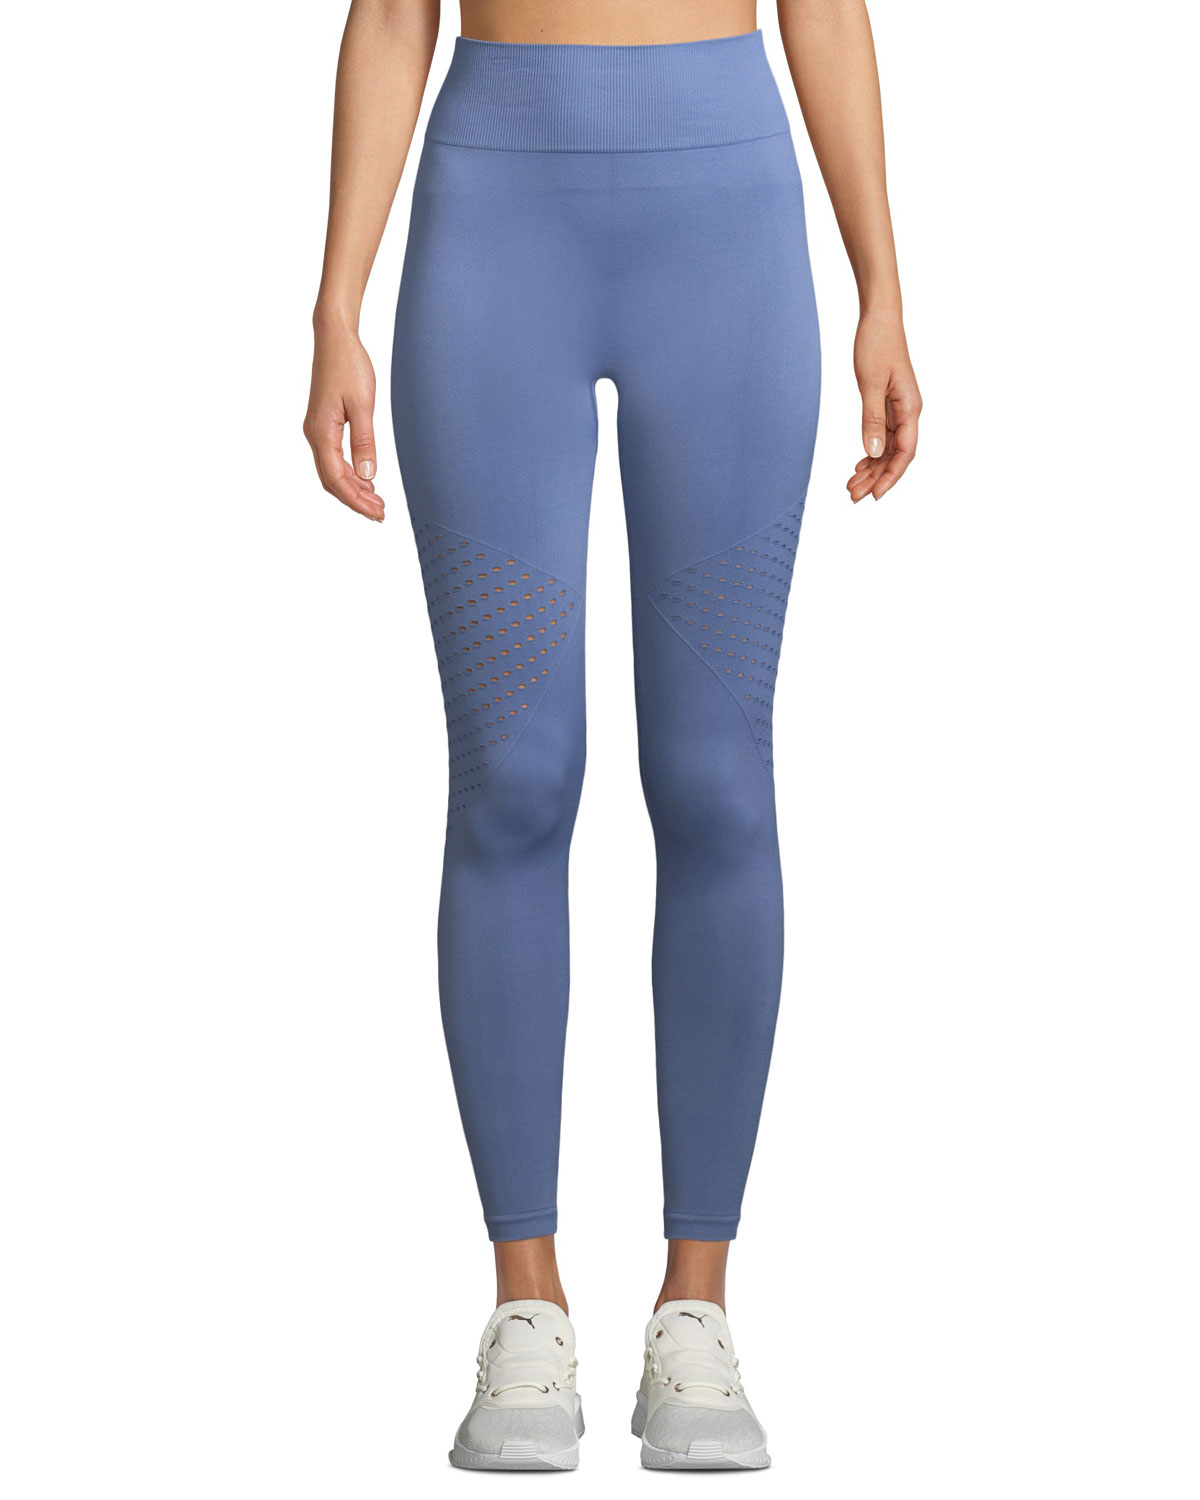 Eastham Perforated Tight Leggings in Blue